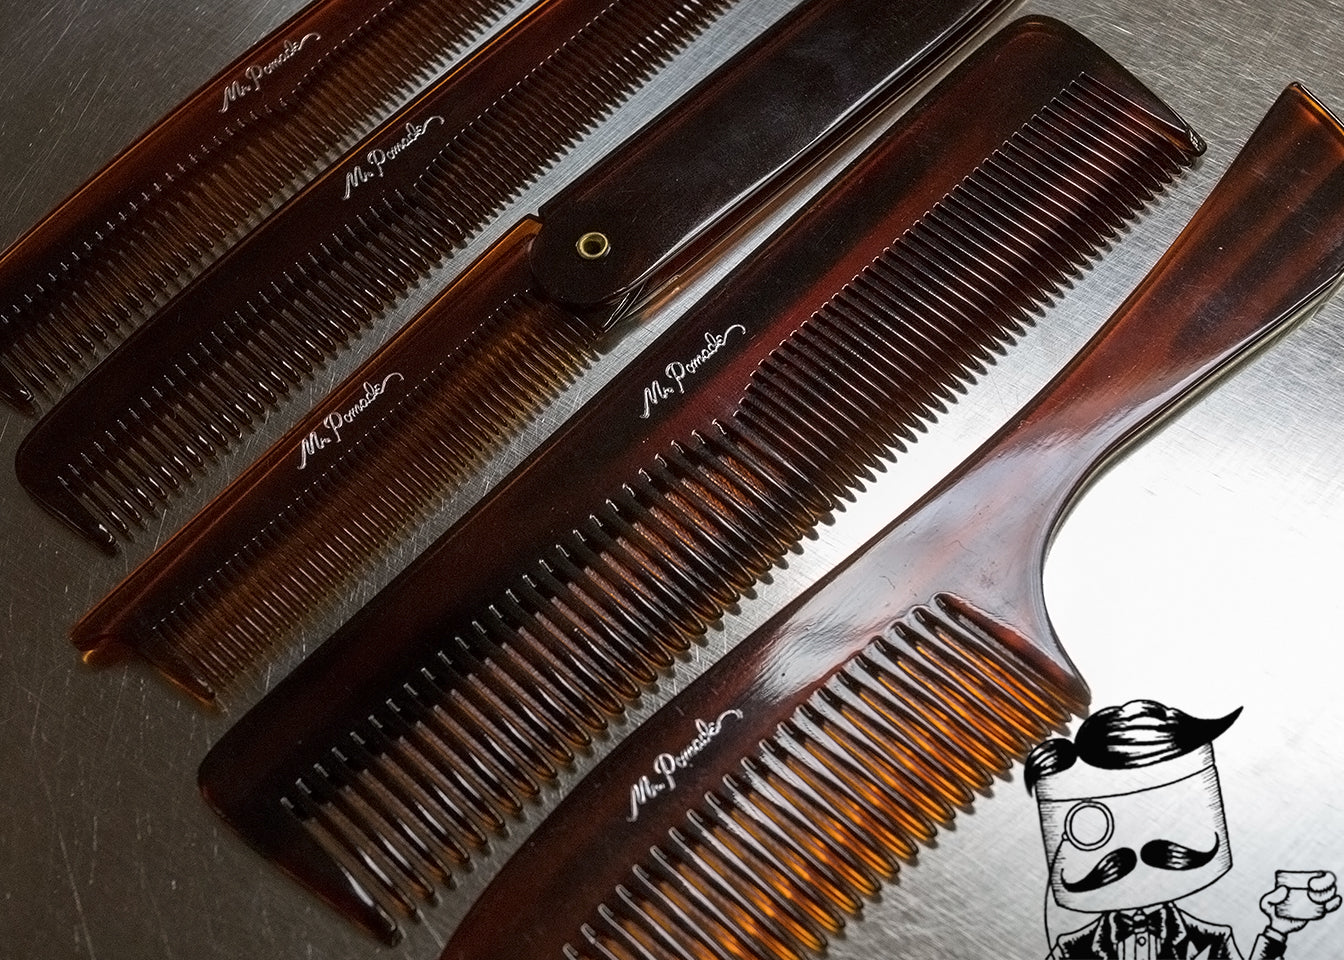 Mr. Pomade Premium Combs